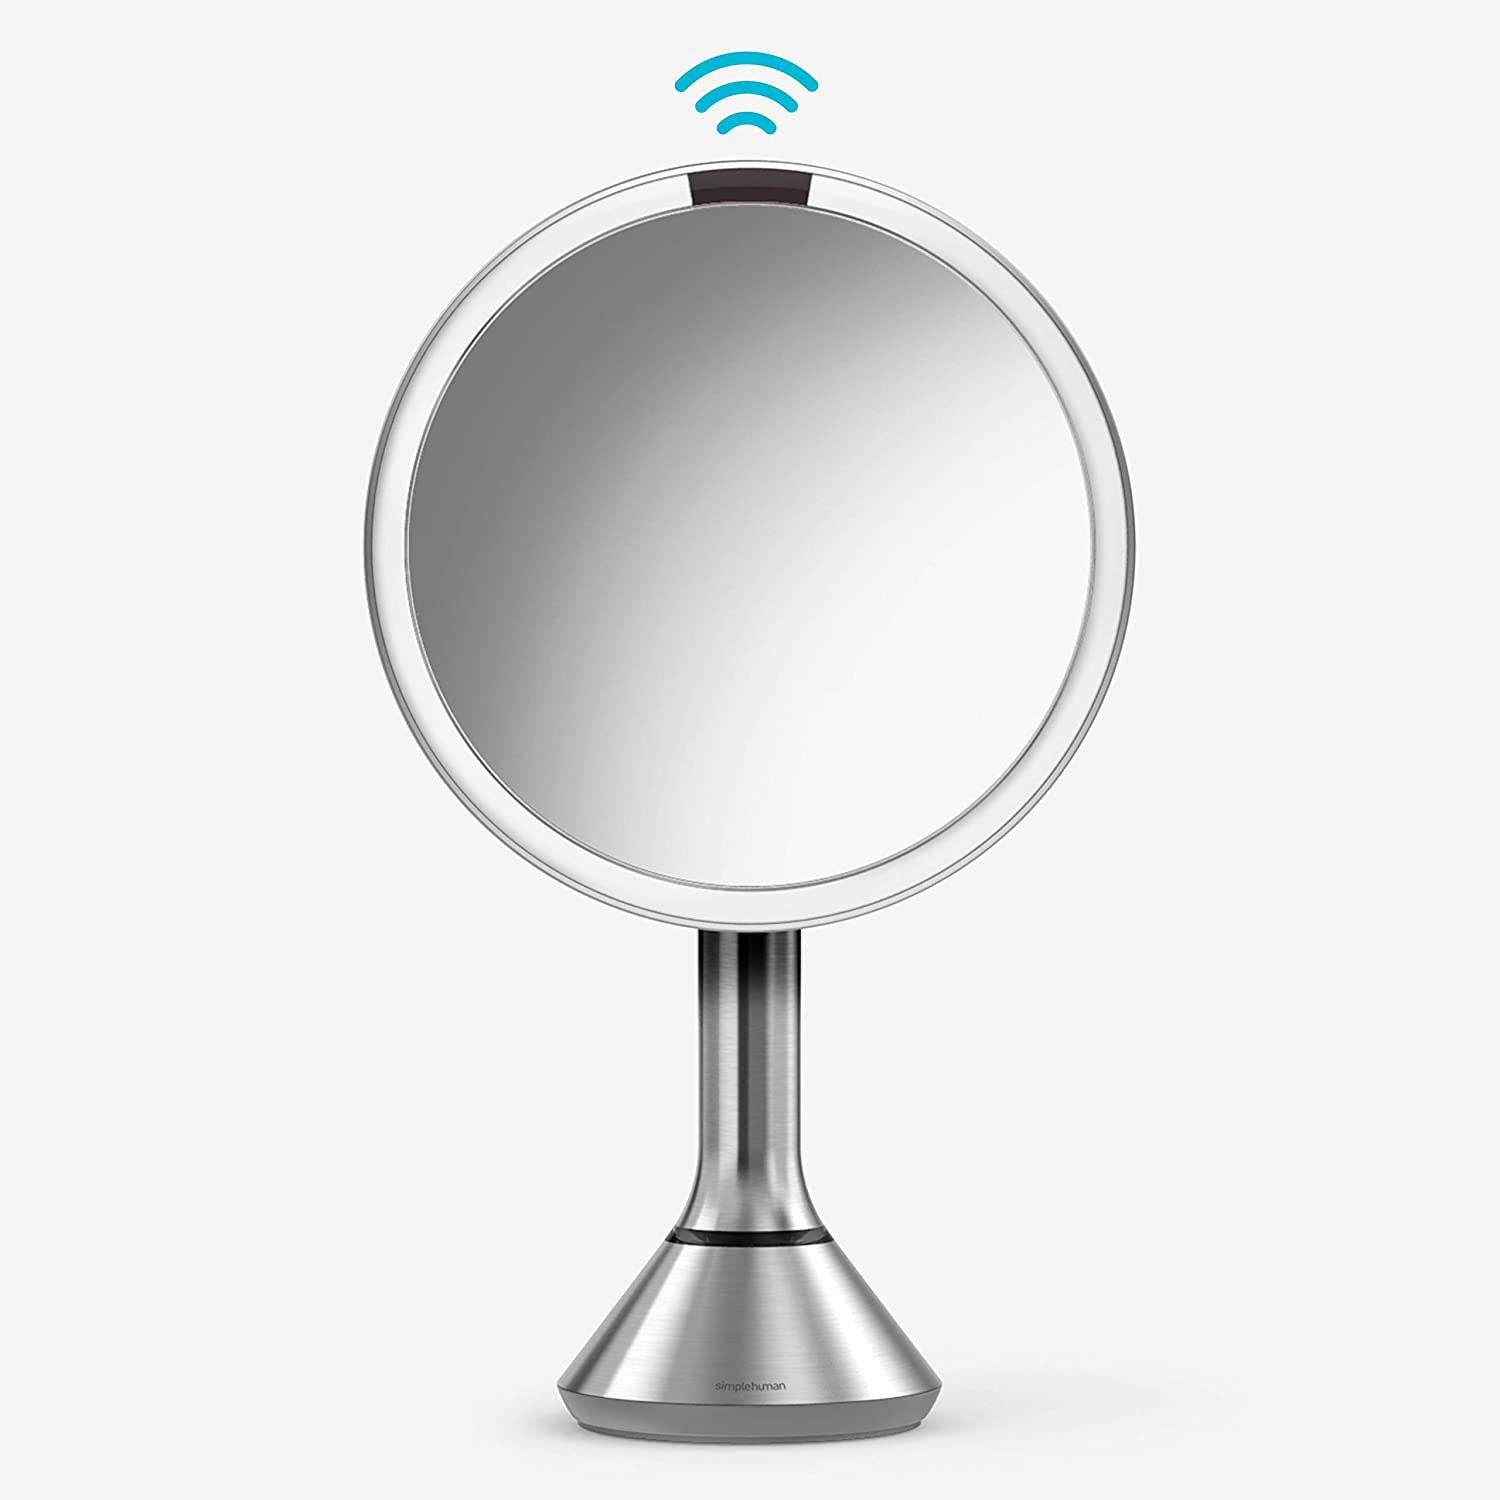 Gifts for sisters ideas - Simple Human Mirror 8